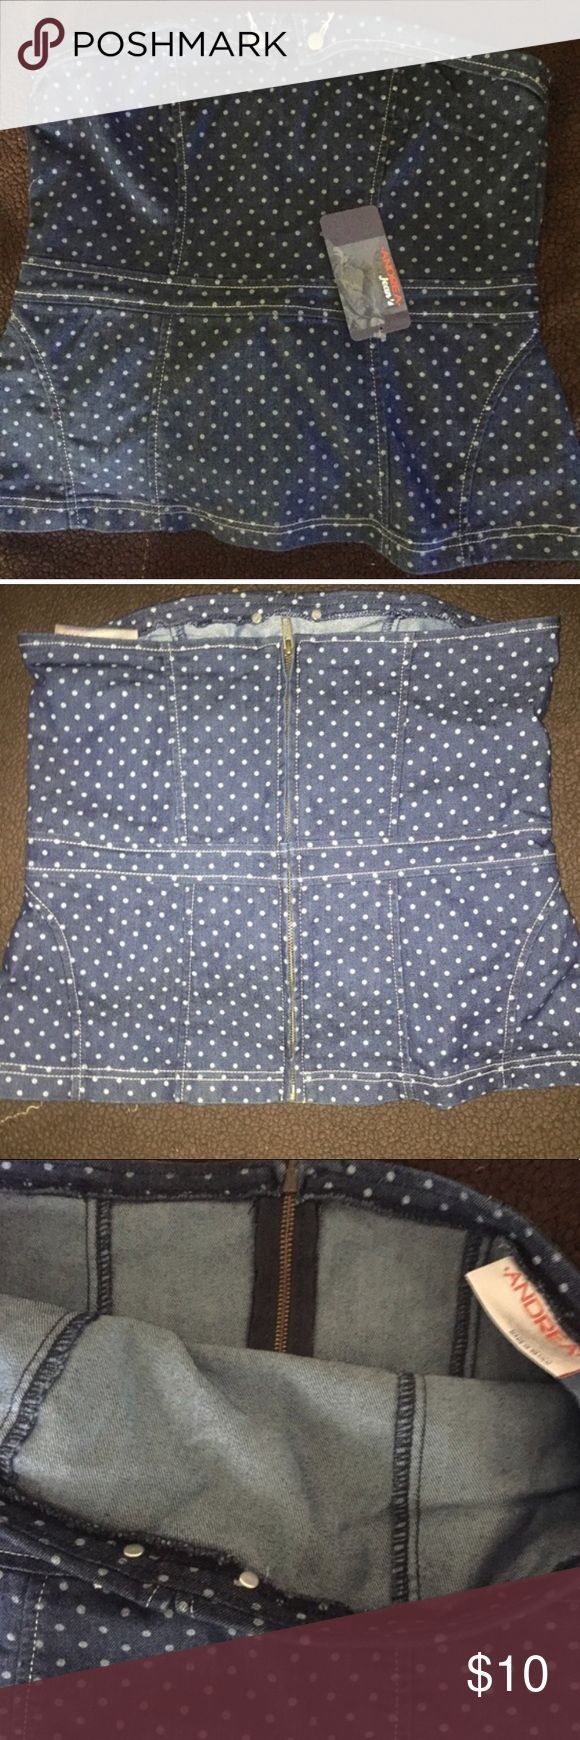 Denim corset top by Andrea So cute with white shorts or capris! Runs small, fits like a medium. Andrea Tops